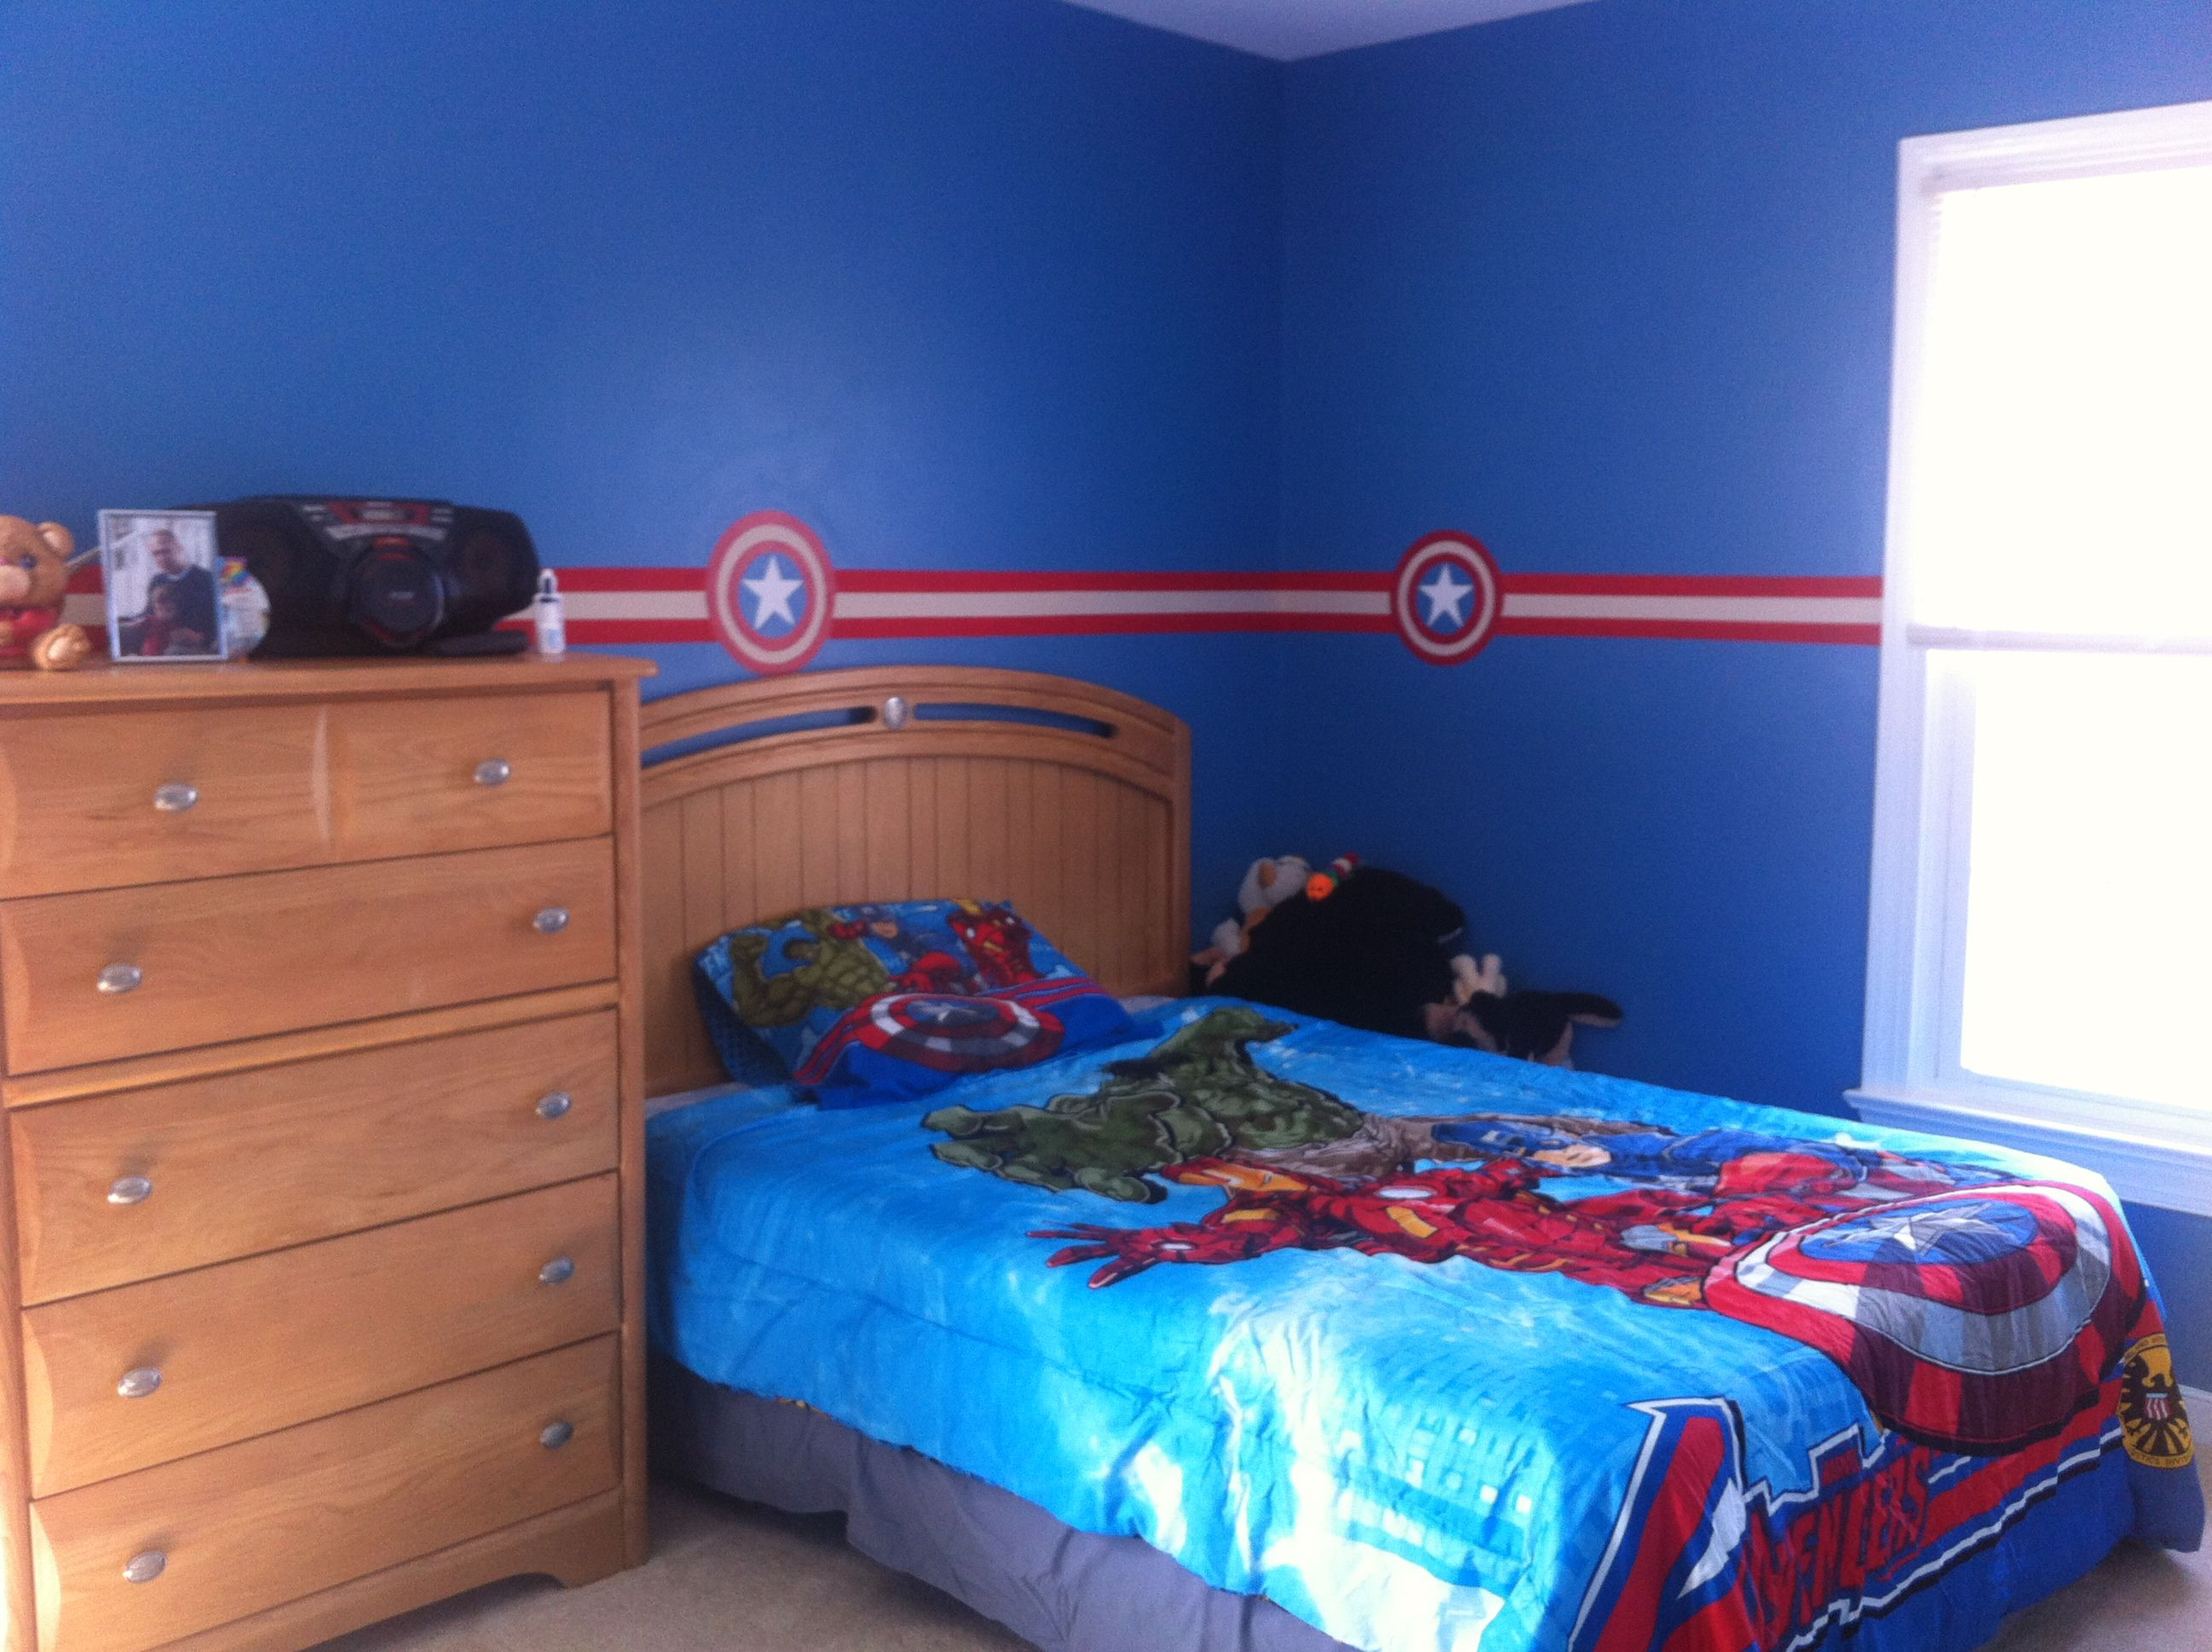 Oldest Son S Room Decor Captain America Theme We Just Picked A Nice